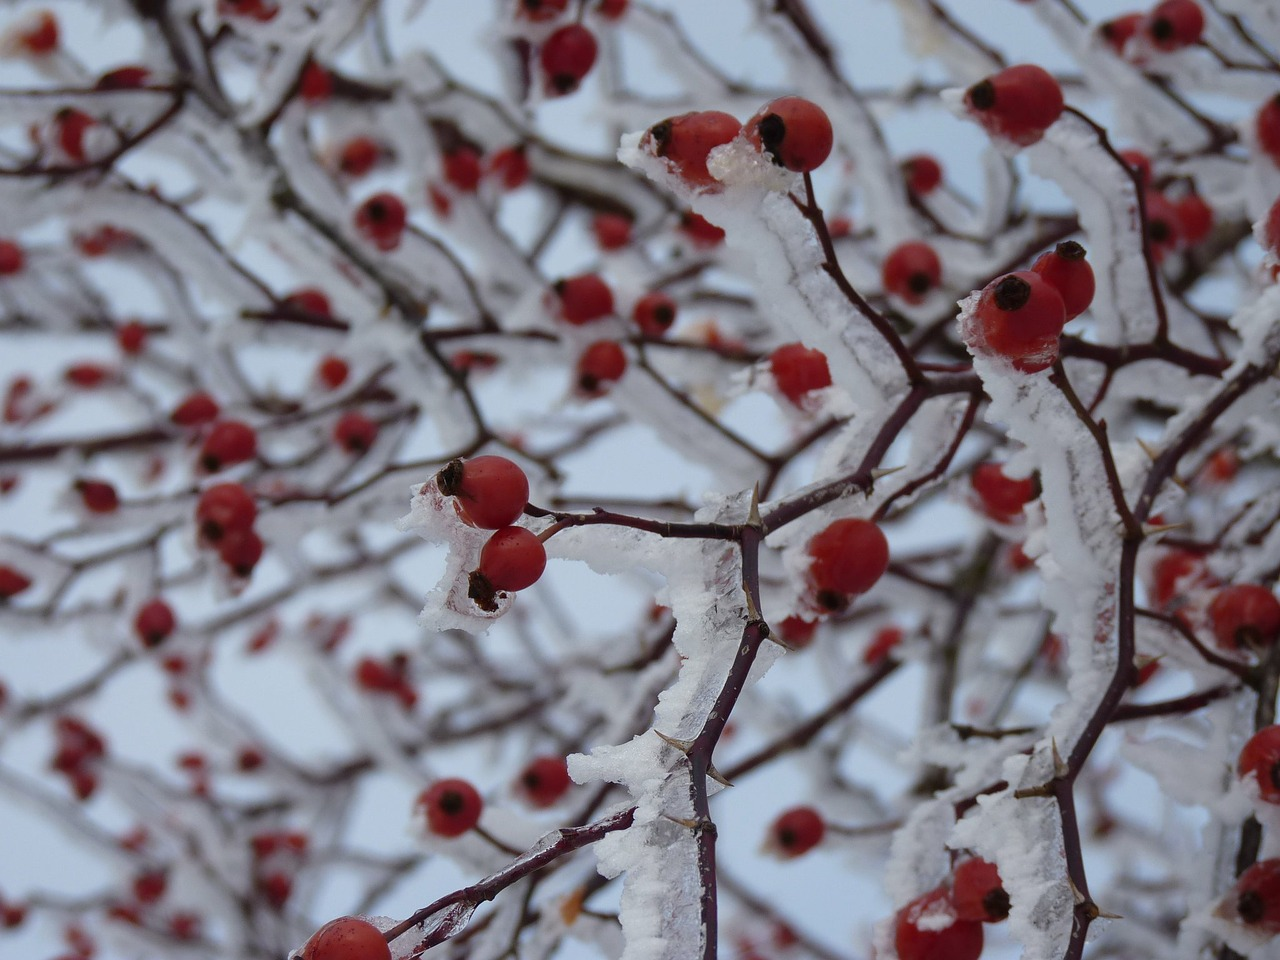 rose hip iced snow free photo